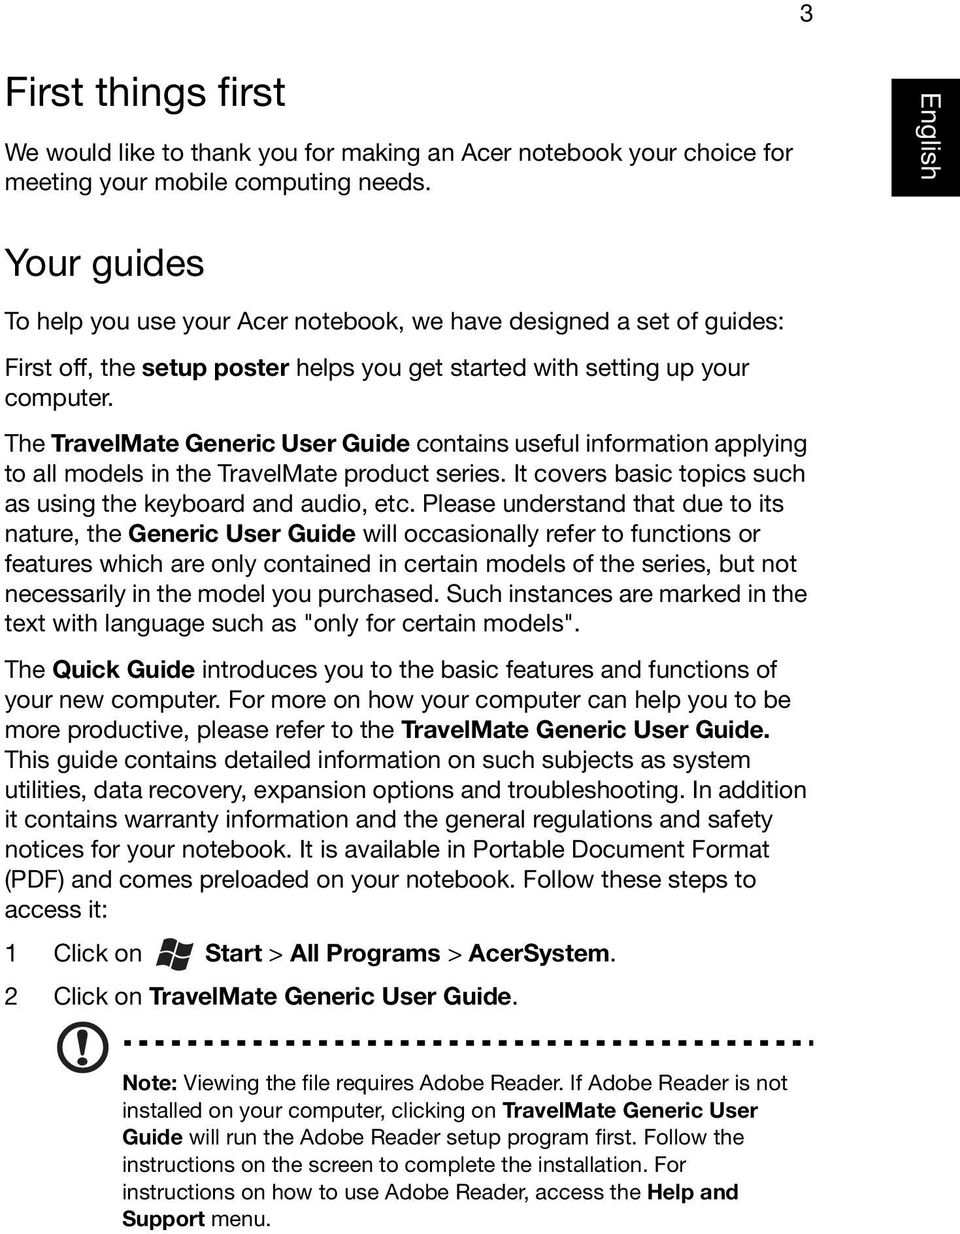 The TravelMate Generic User Guide contains useful information applying to all models in the TravelMate product series. It covers basic topics such as using the keyboard and audio, etc.